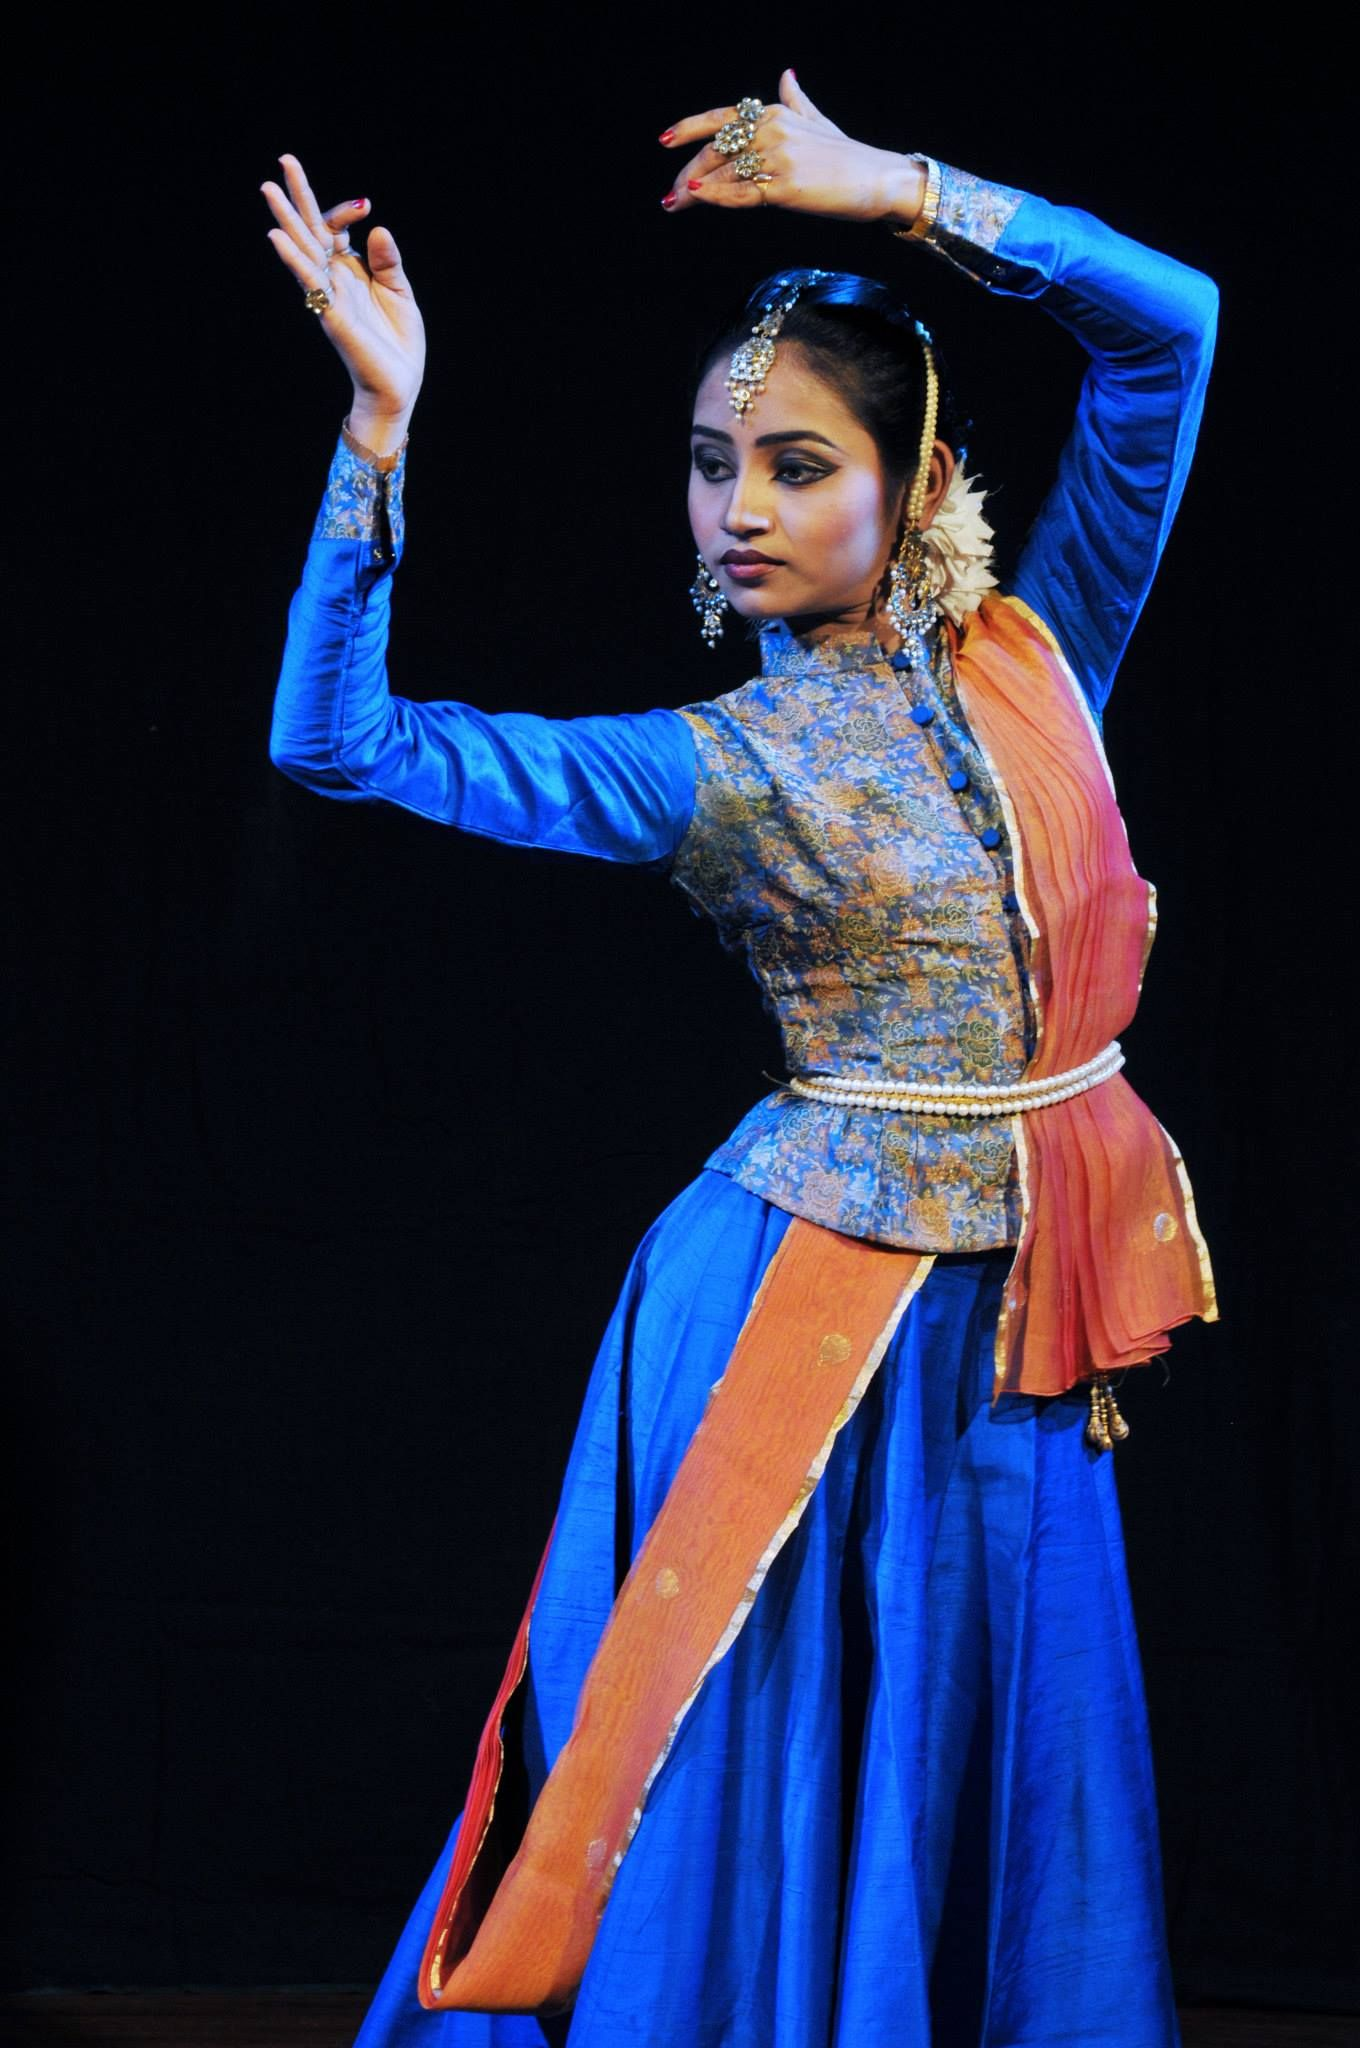 Elegant Kathak Costume Dance Outfits Dance Fashion